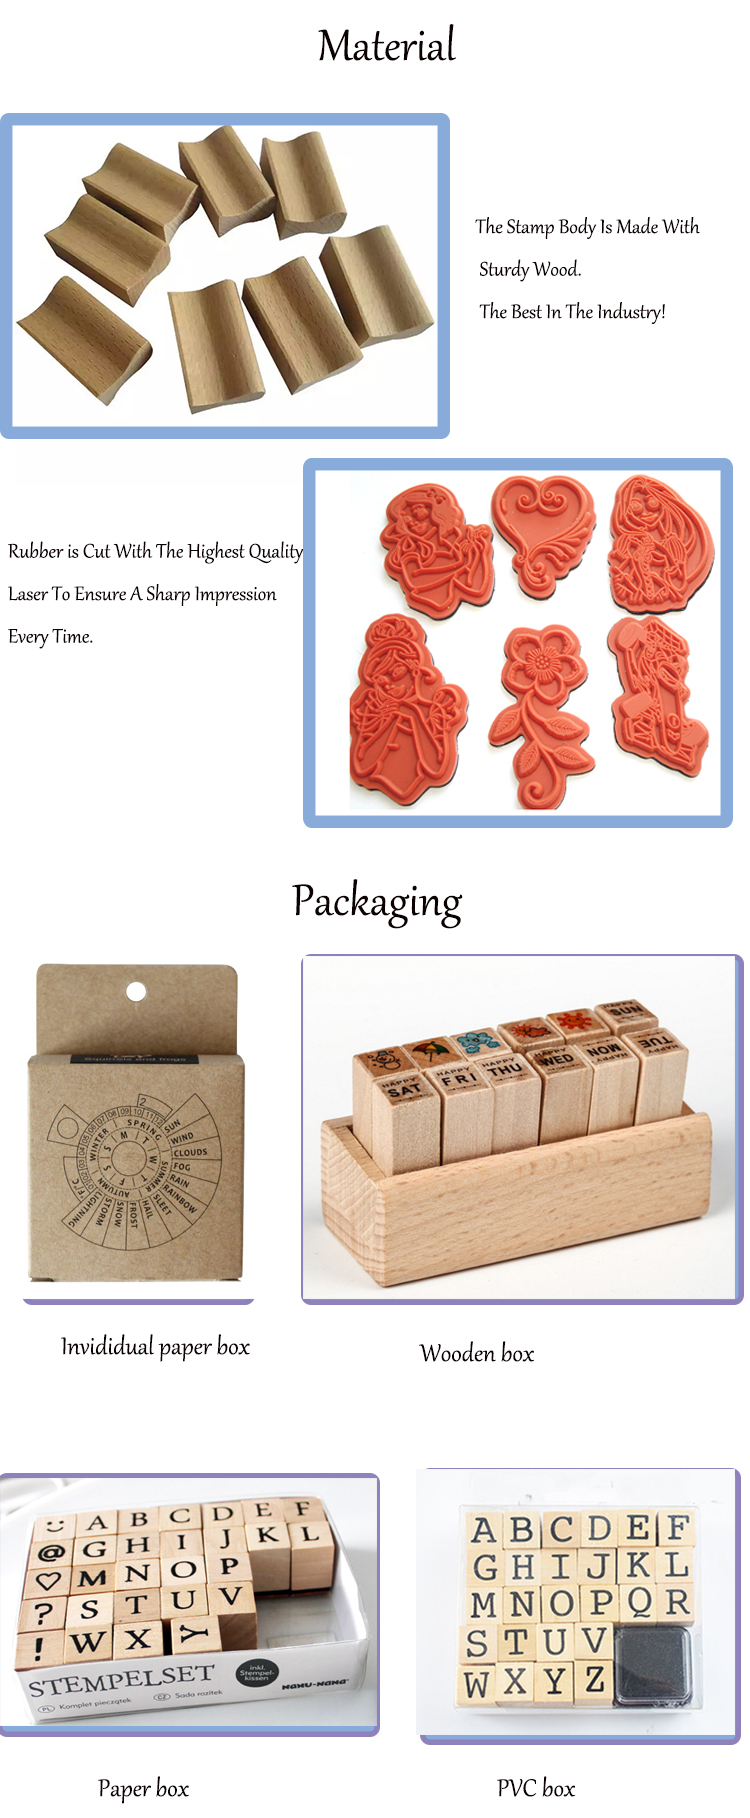 Sedex factory audit person wax seal made logo chines stone clay hot brand rubber part photopolym uv custom stamp